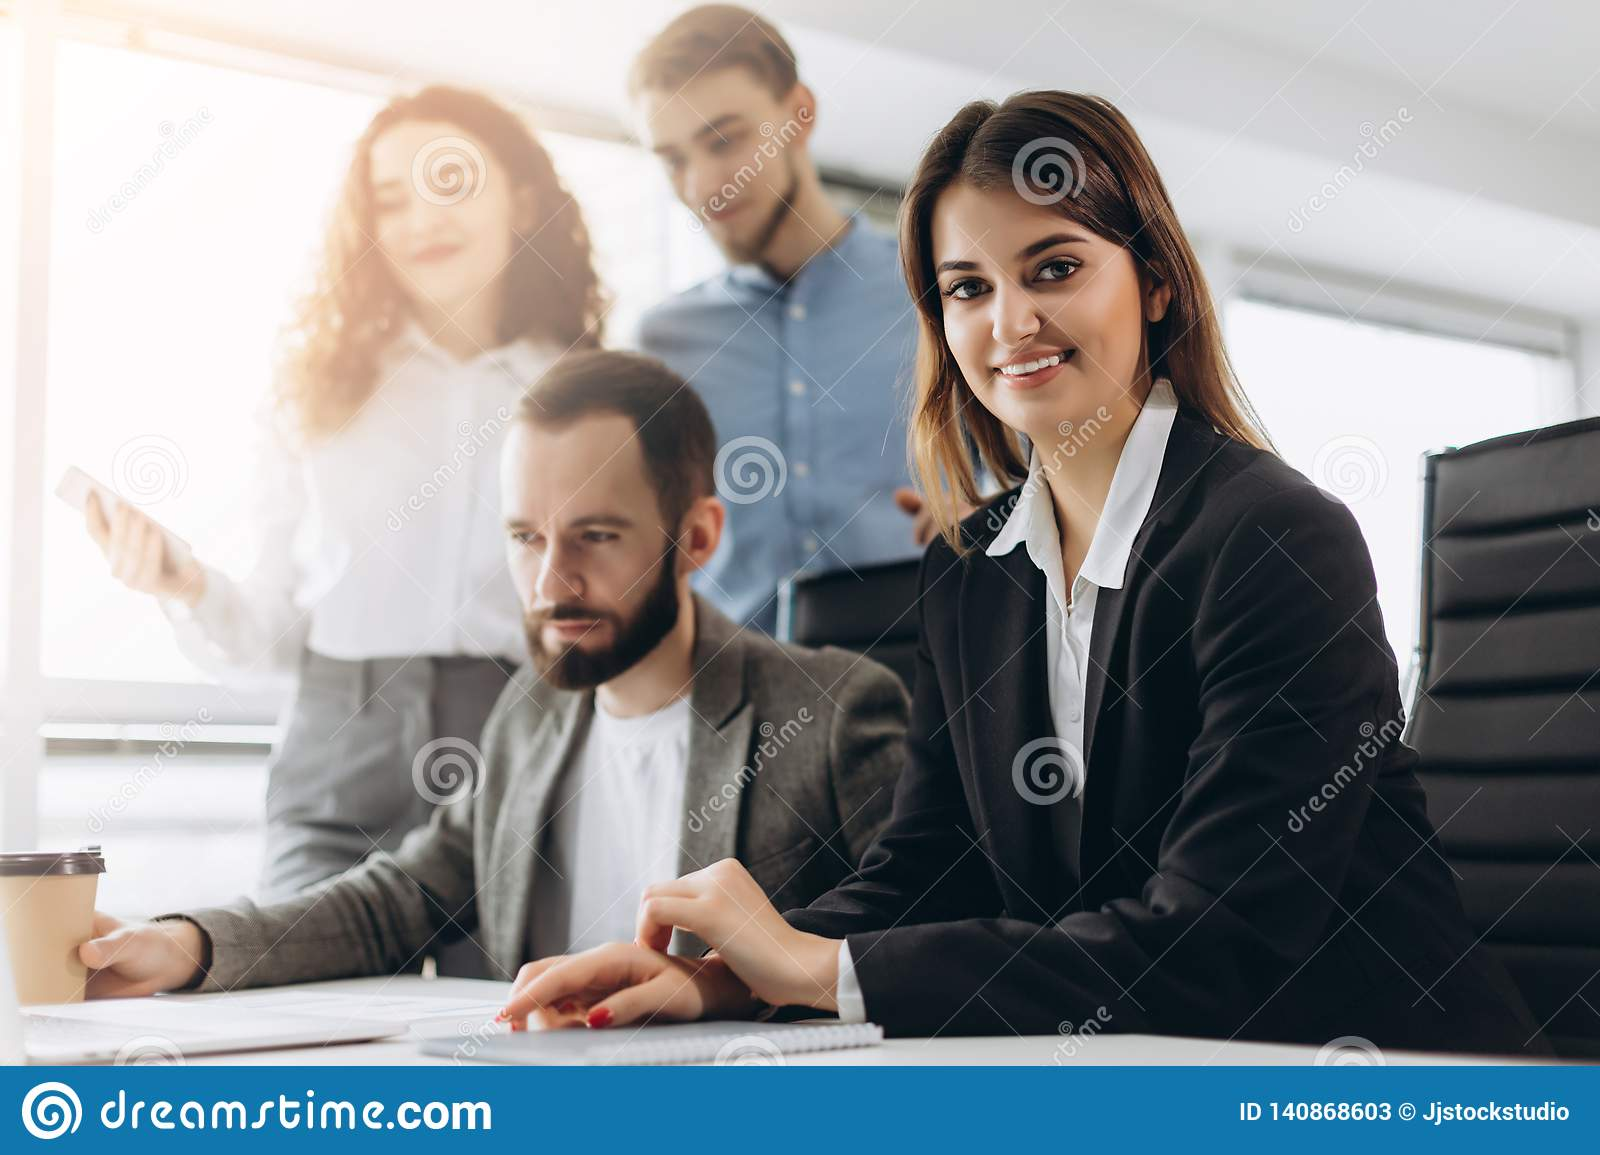 Attractive young business lady is looking at camera and smiling while her colleagues are working in the background